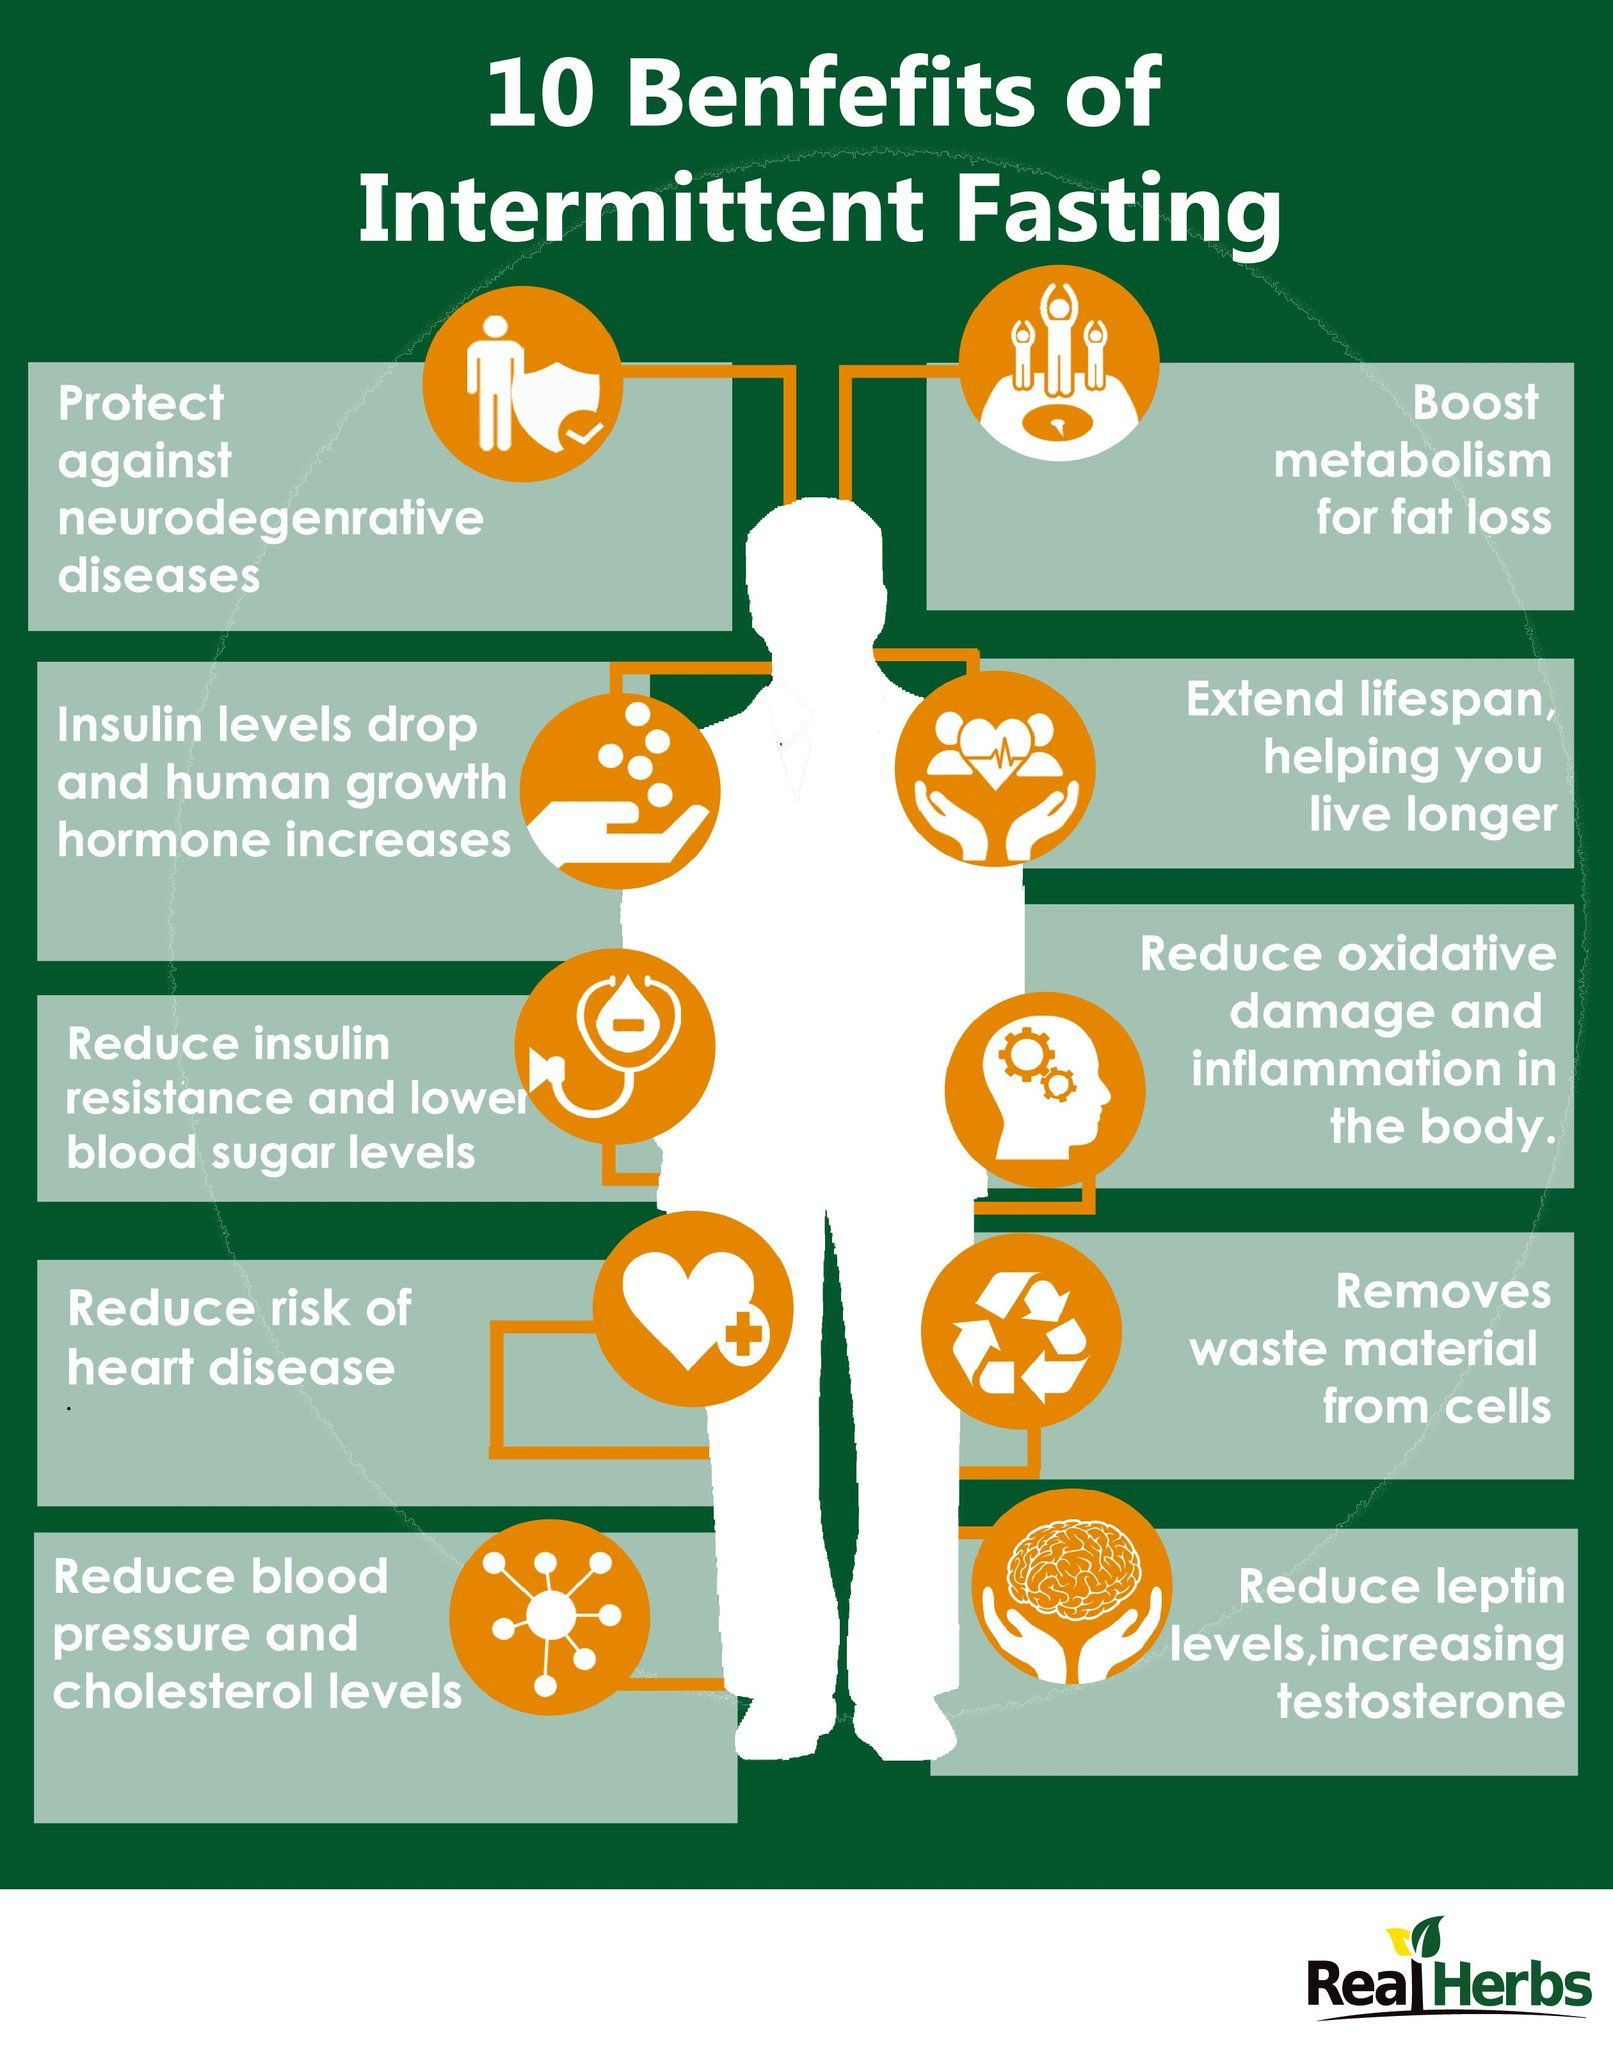 10 Evidence-Based Health Benefits of Intermittent Fasting ...